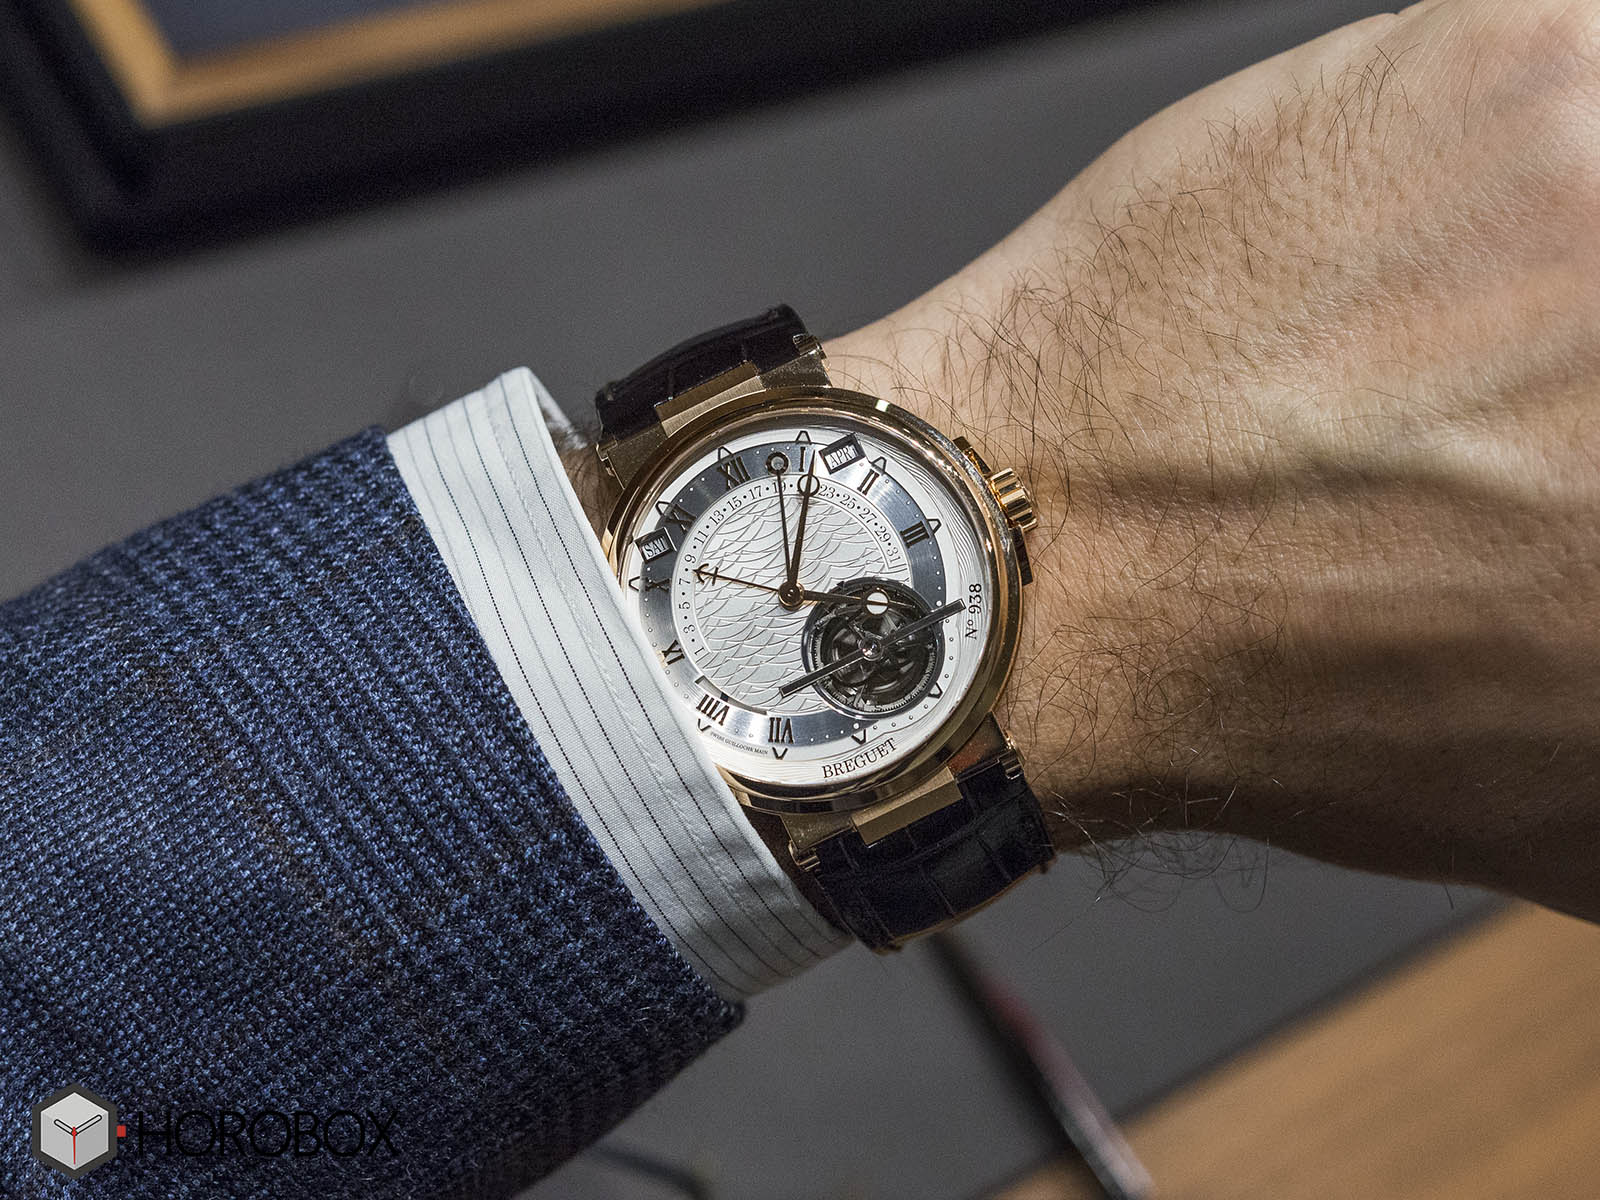 Breguet-Marine-Equation-Marchante-5887-18K-10.jpg